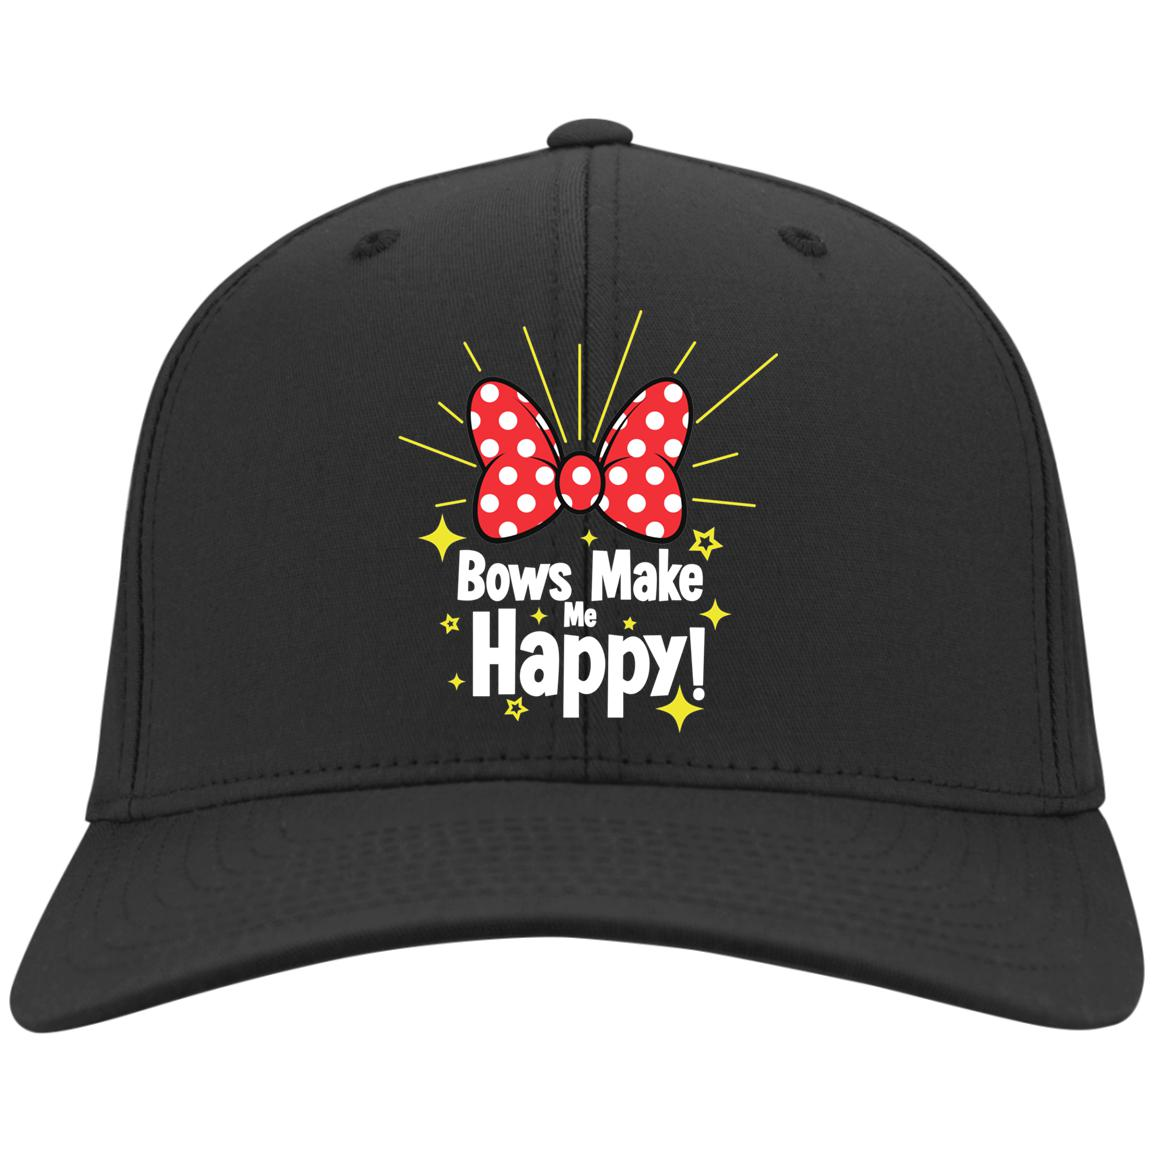 Bows Make Me Happy - Sport-Tek Dry Zone Nylon Cap